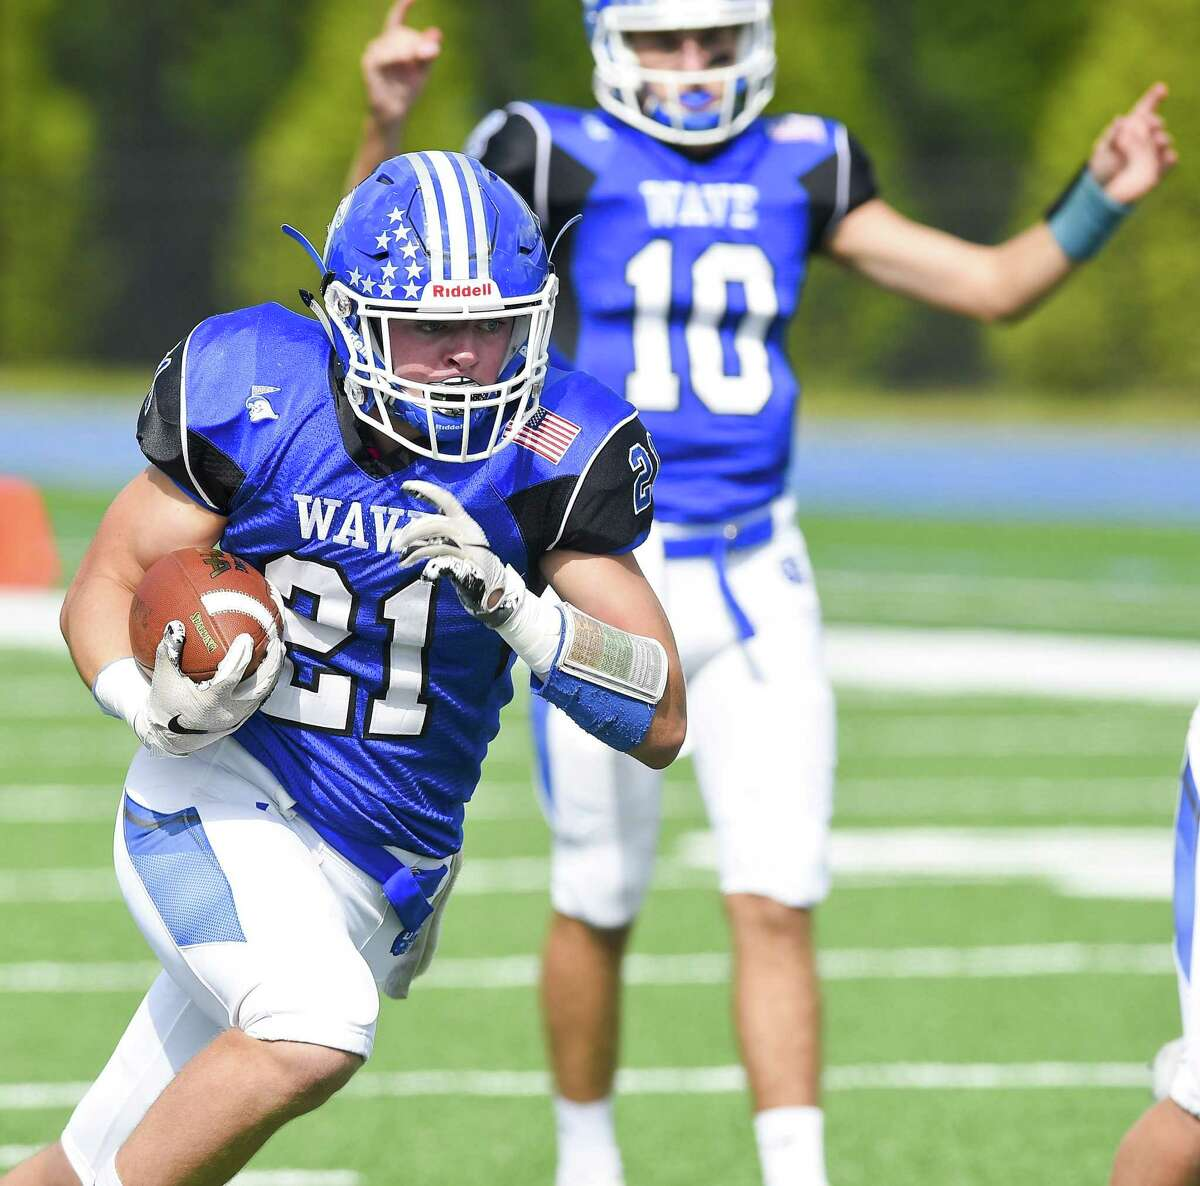 Darien's Will Kirby carries the ball in for a touchdown during the first half against Stamford on Sept. 29.